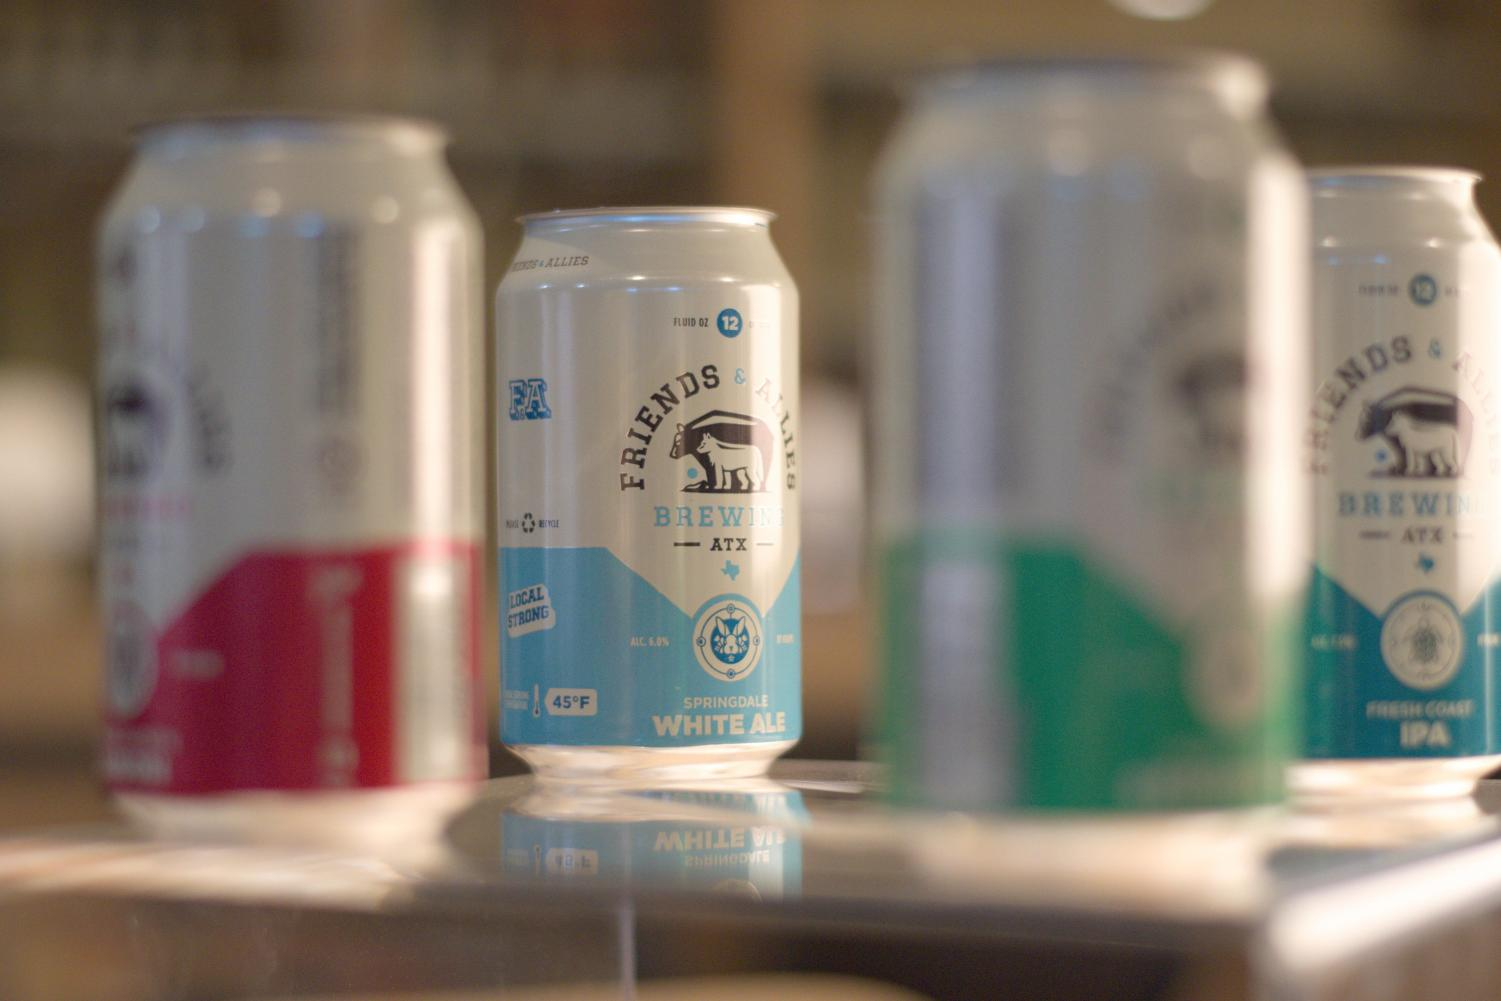 Friends and Allies brewing was founded by Ben Sabin and Devon Ponds. The company focuses on West Coast brewing techniques that are suitable for Austin's warm and summery weather.